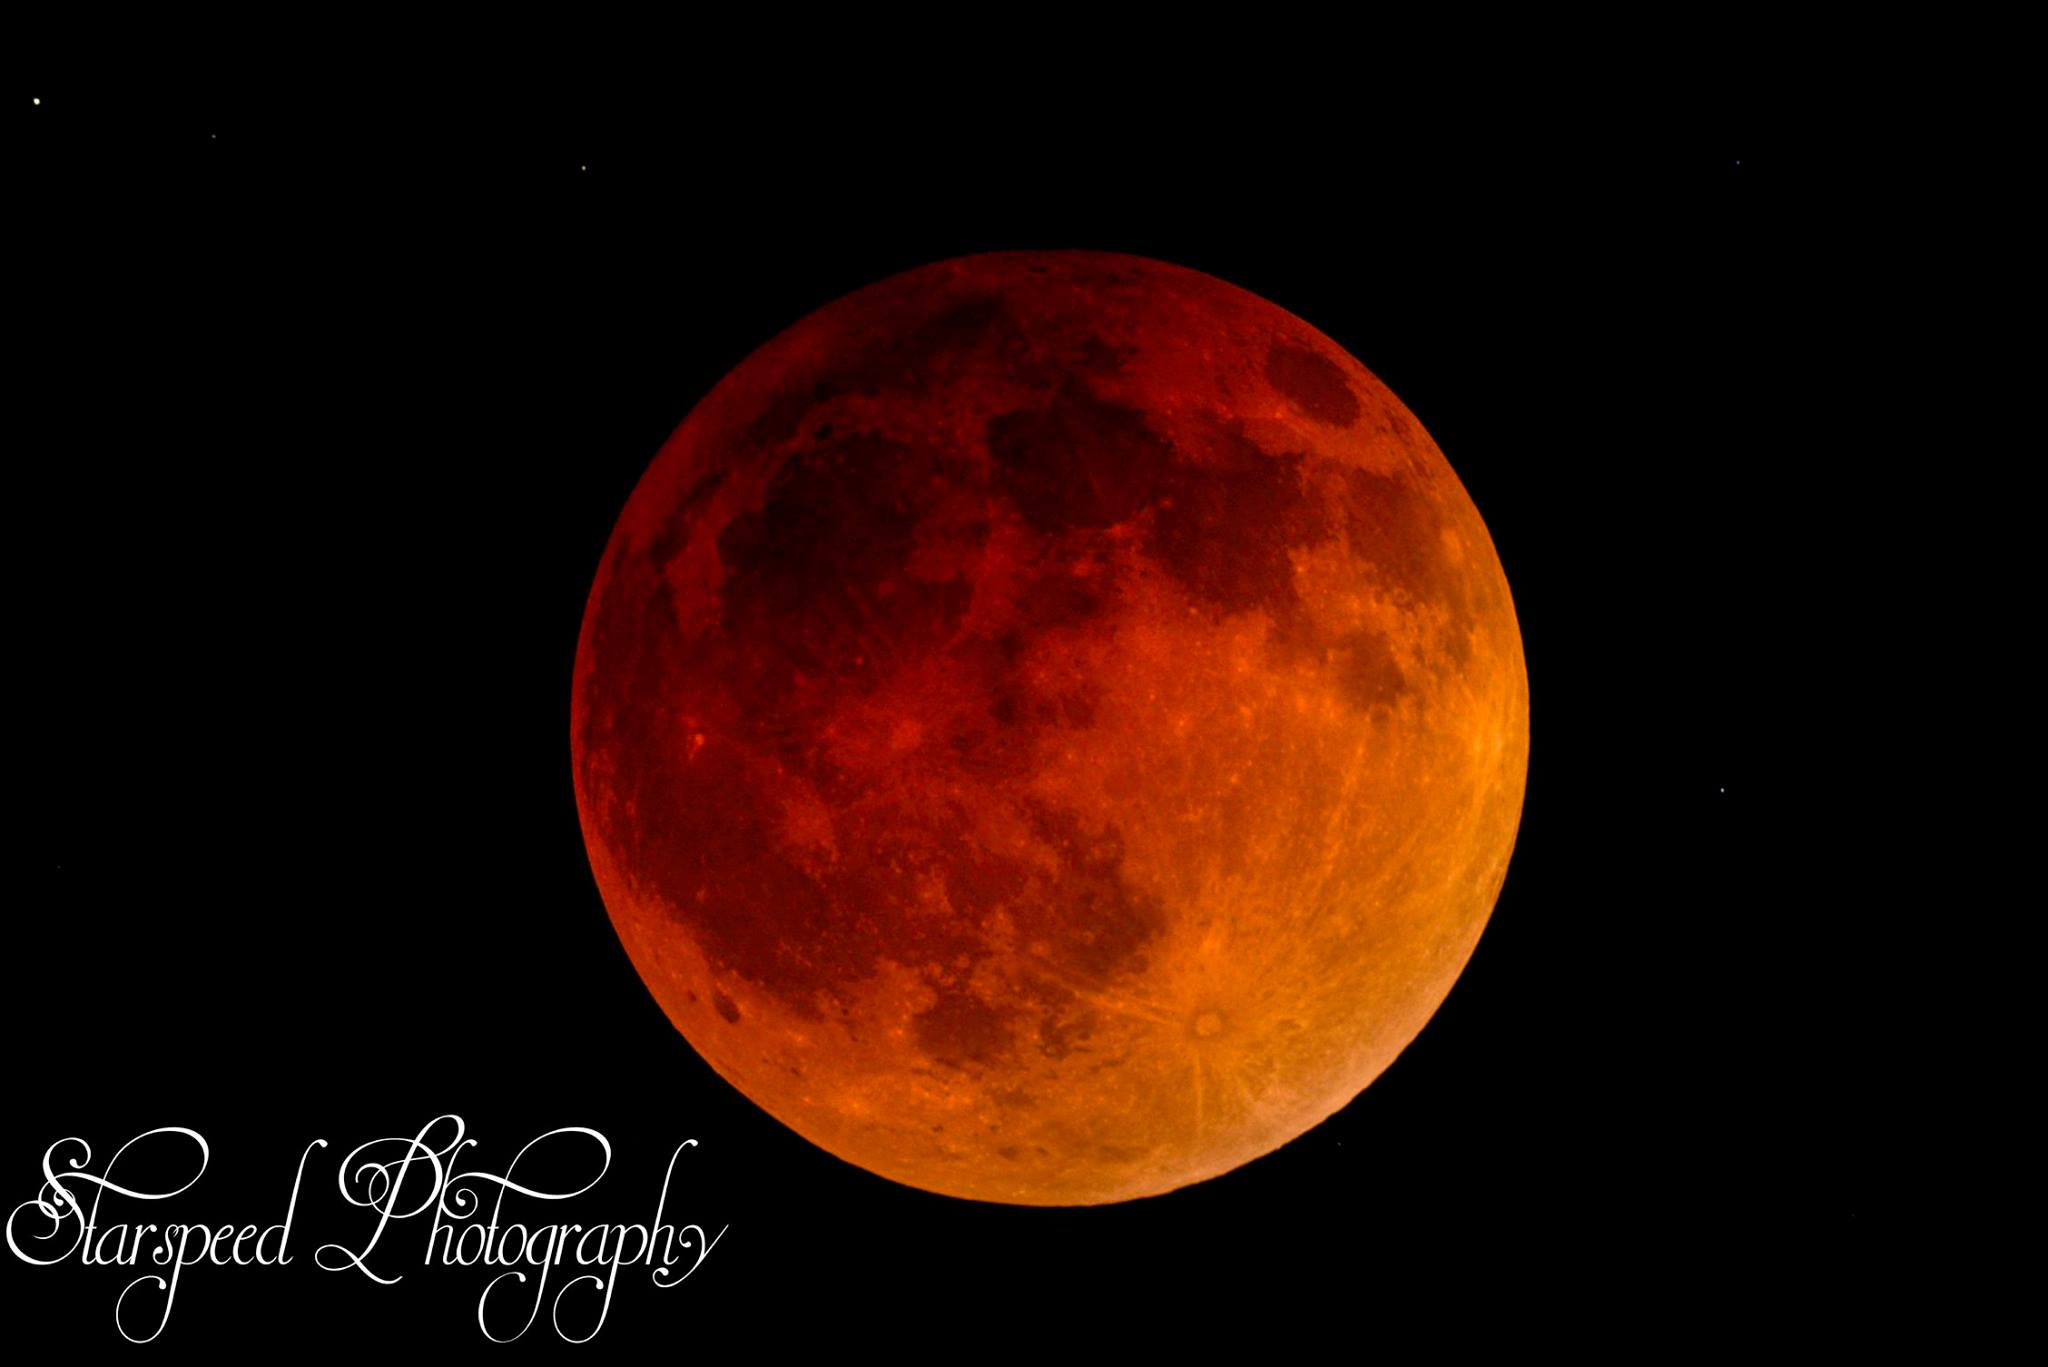 blood moon july 2018 canada vancouver - photo #25